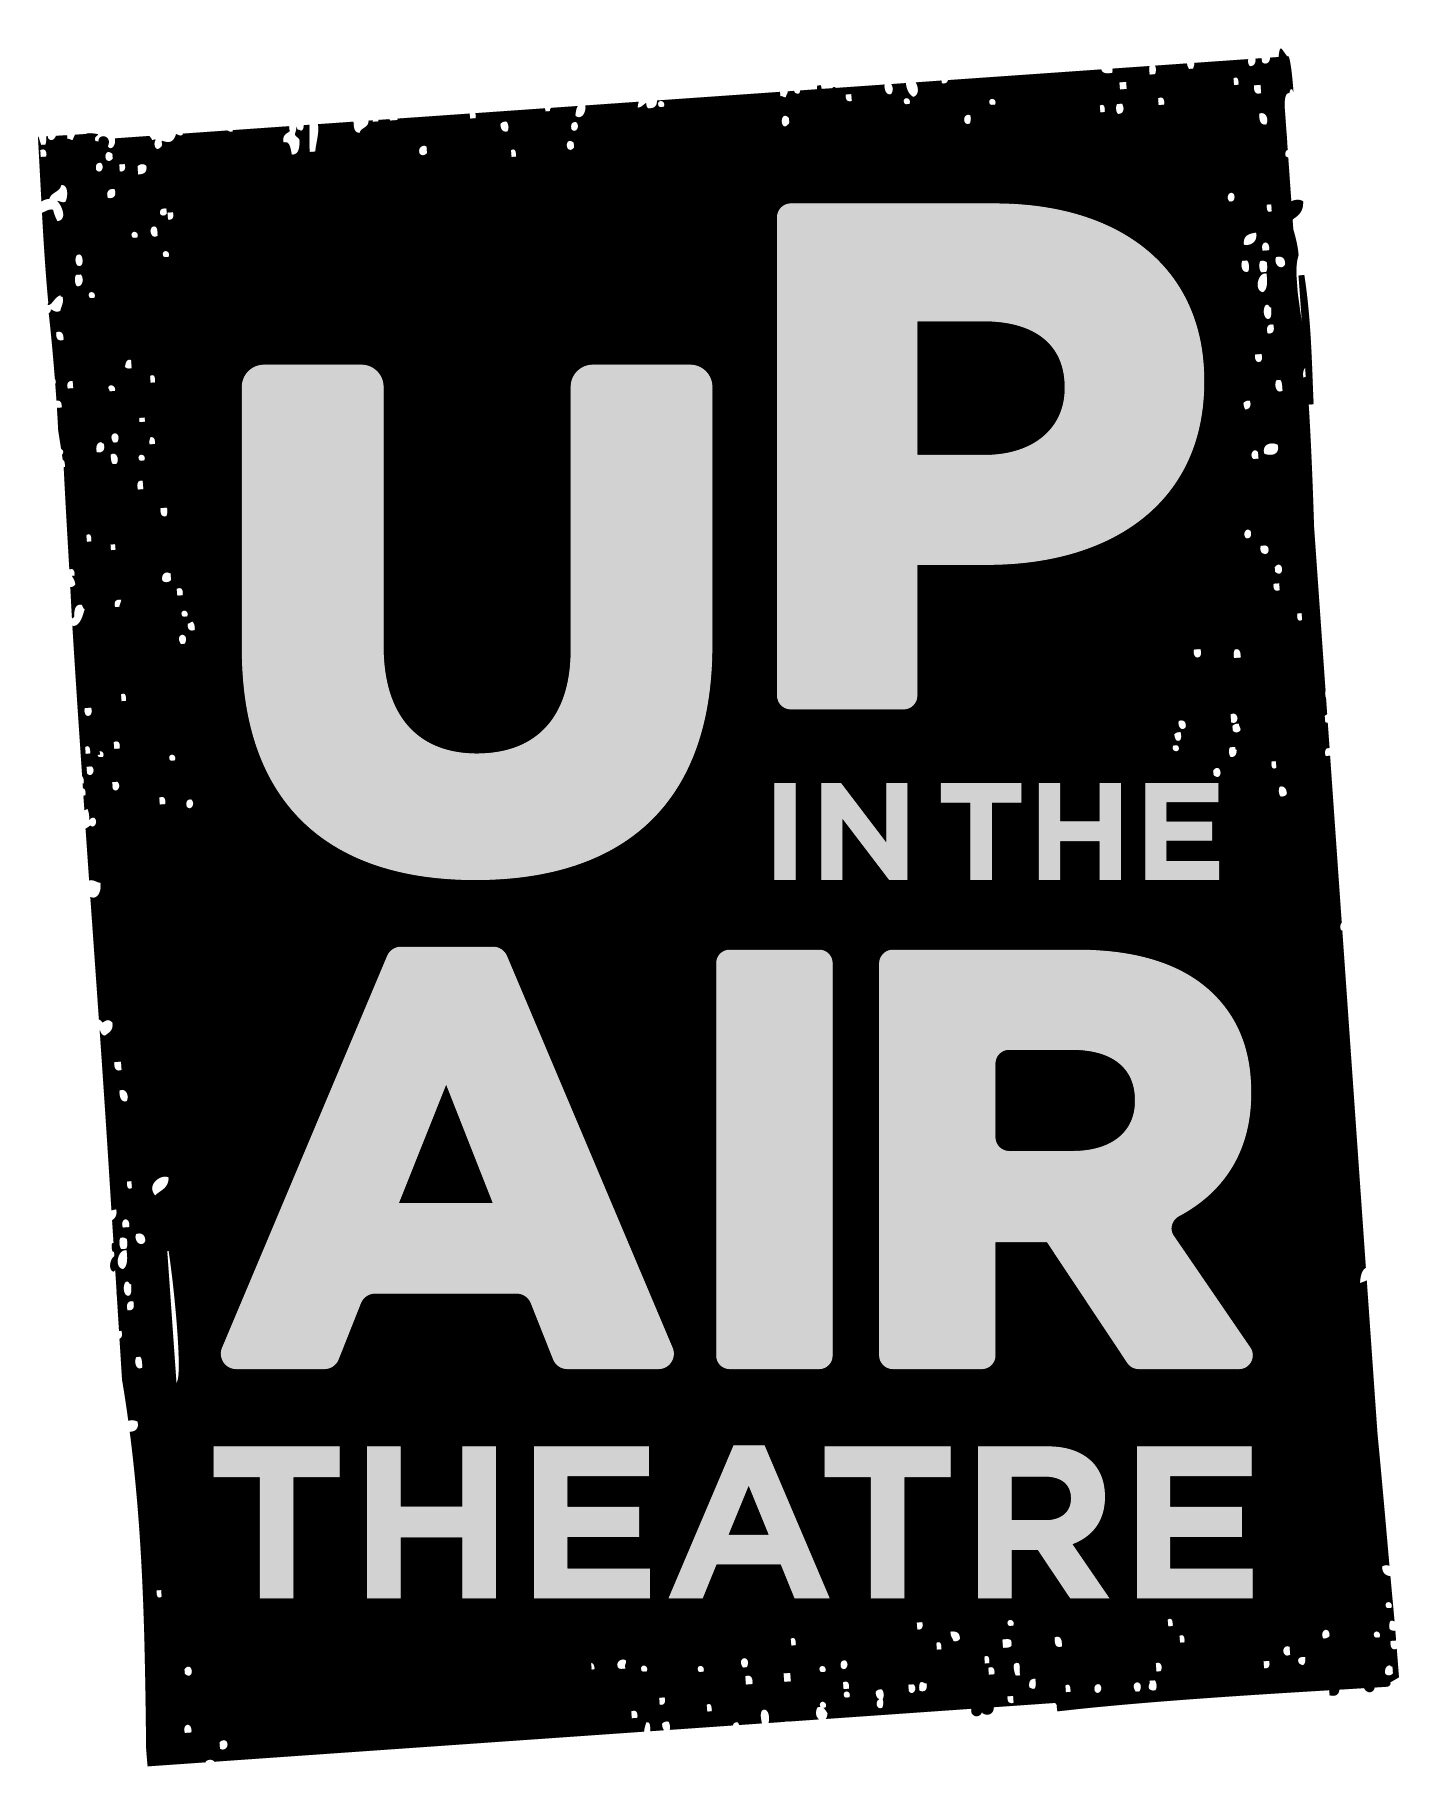 Upintheair Theatre